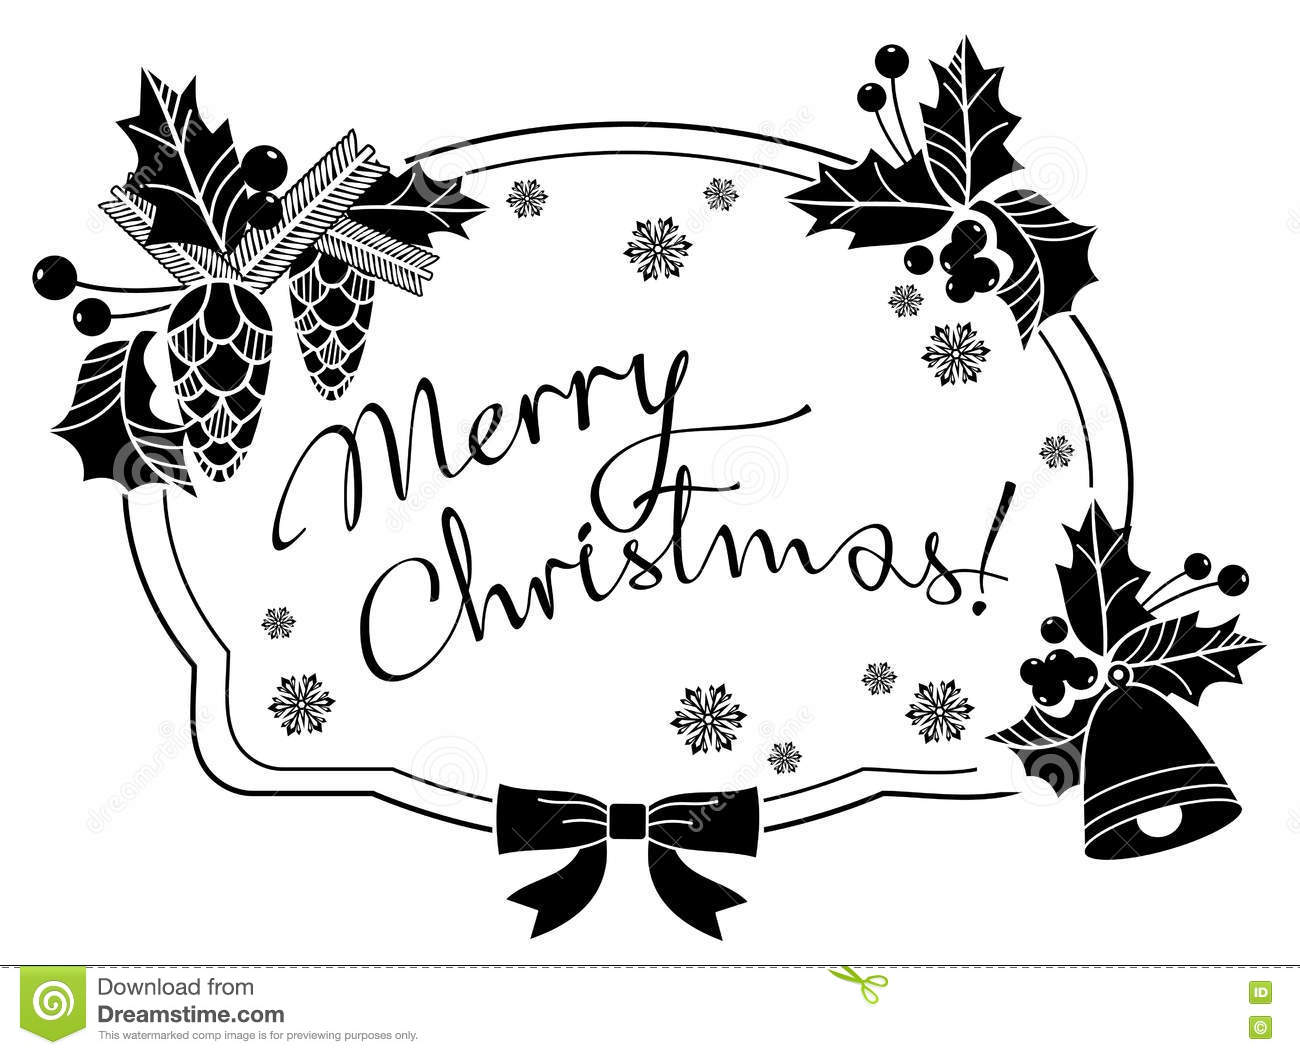 Merry Christmas Images Black And White.Christmas Label With Written Greeting Merry Christmas